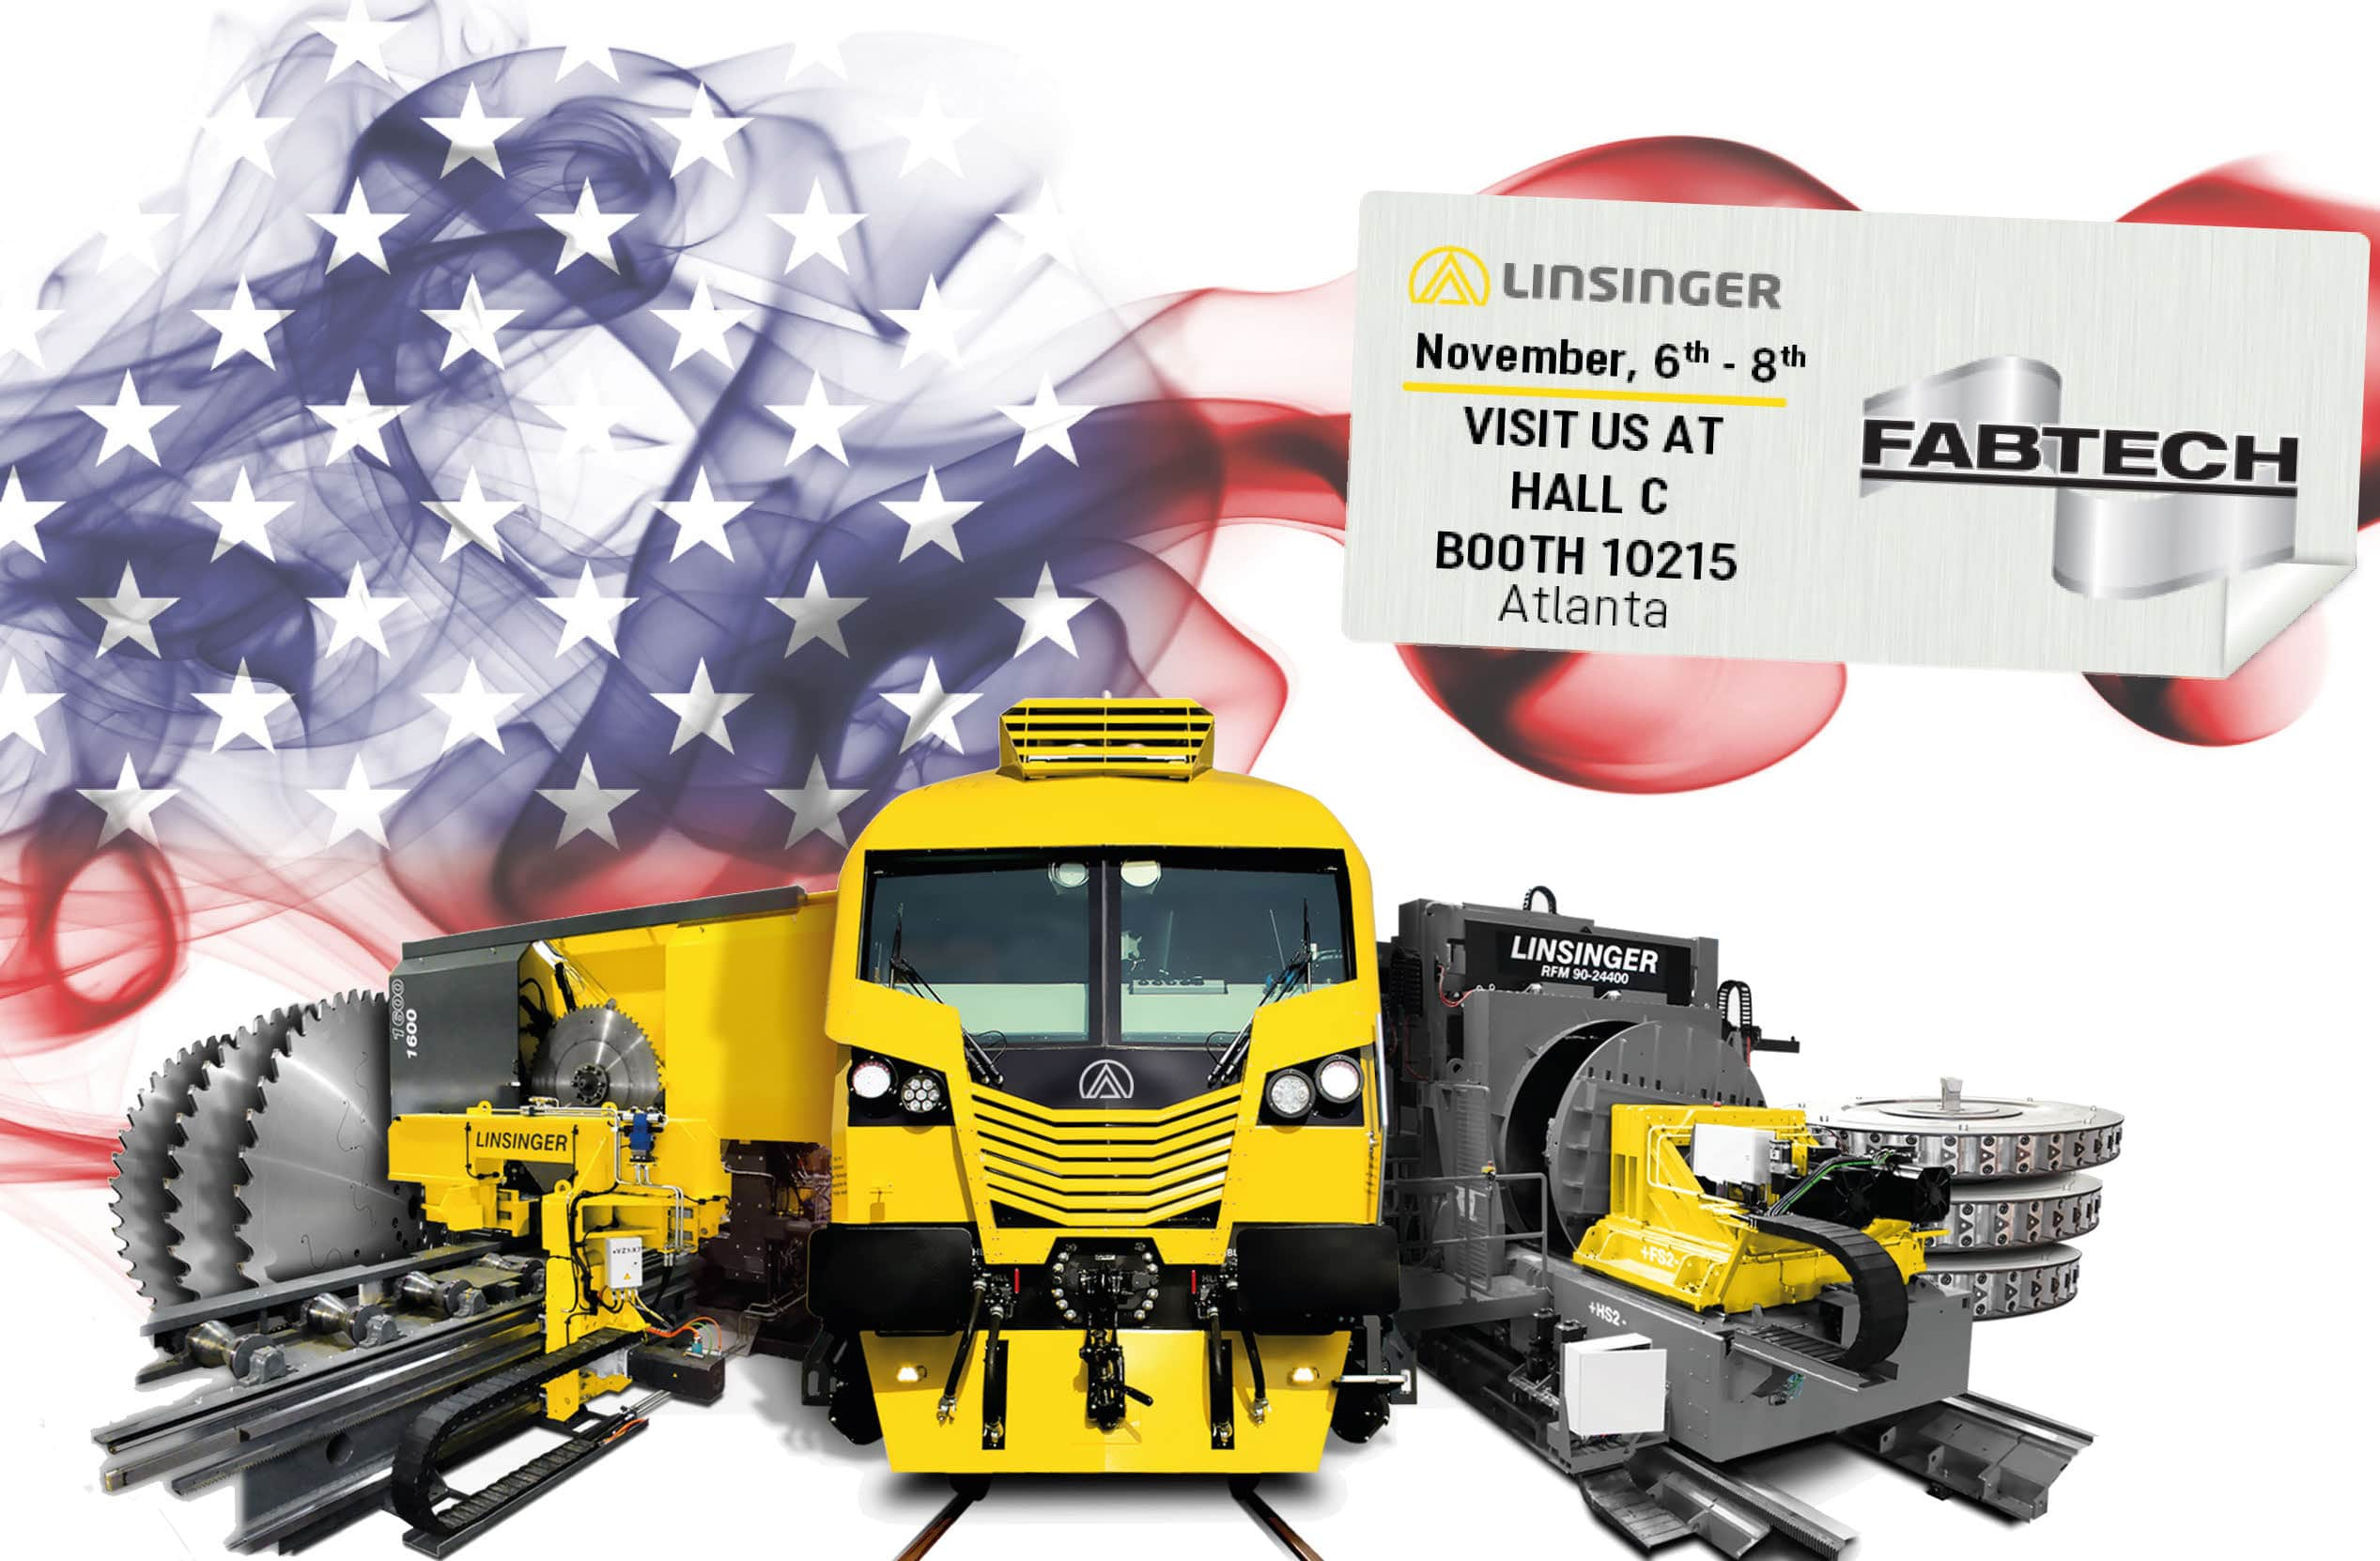 Linsinger als Aussteller auf Messe, Linsinger is exhibitor at Fabtech Exhibition in